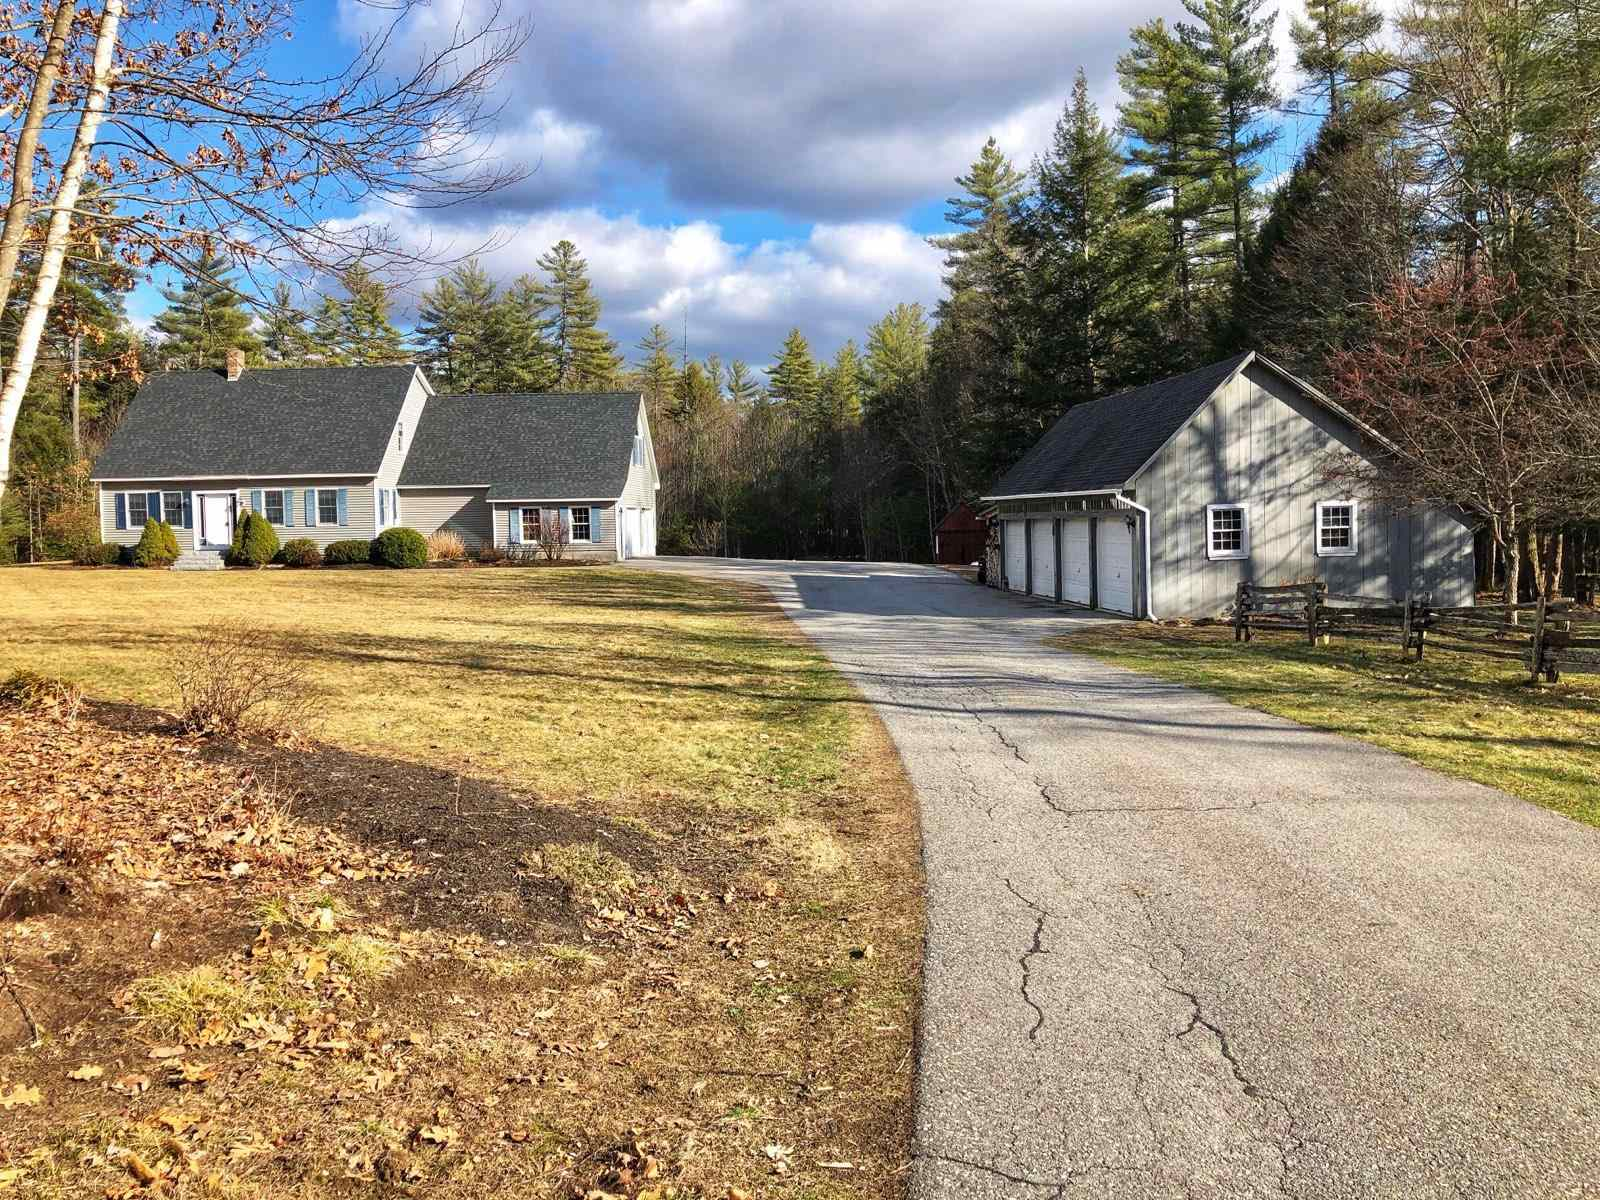 Photo of 913 PINE Street Hopkinton NH 03229